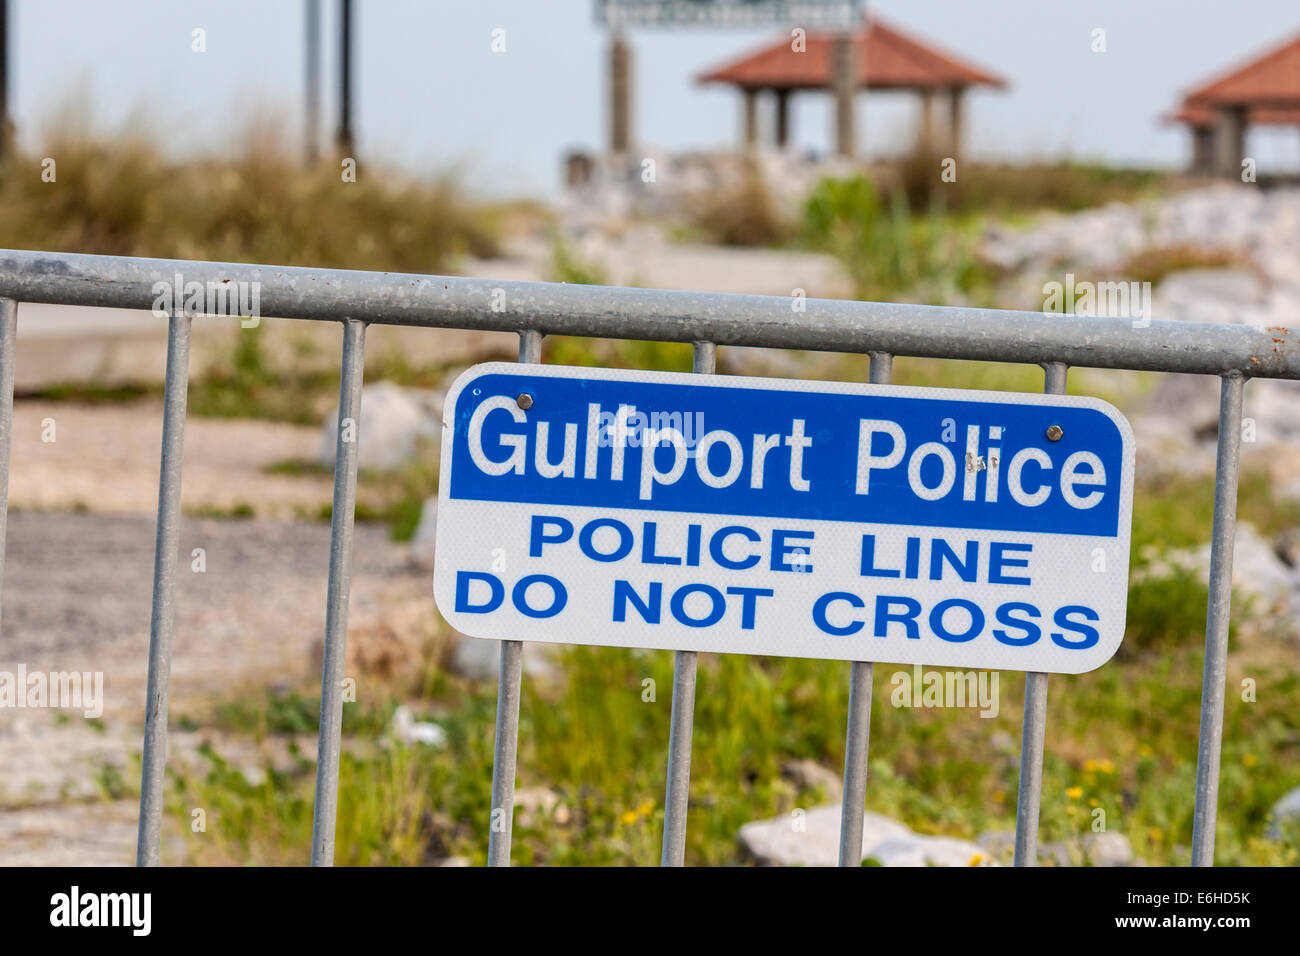 Warning sign to keep visitors out of area damaged by hurricane in Gulfport, Mississippi - Stock Image